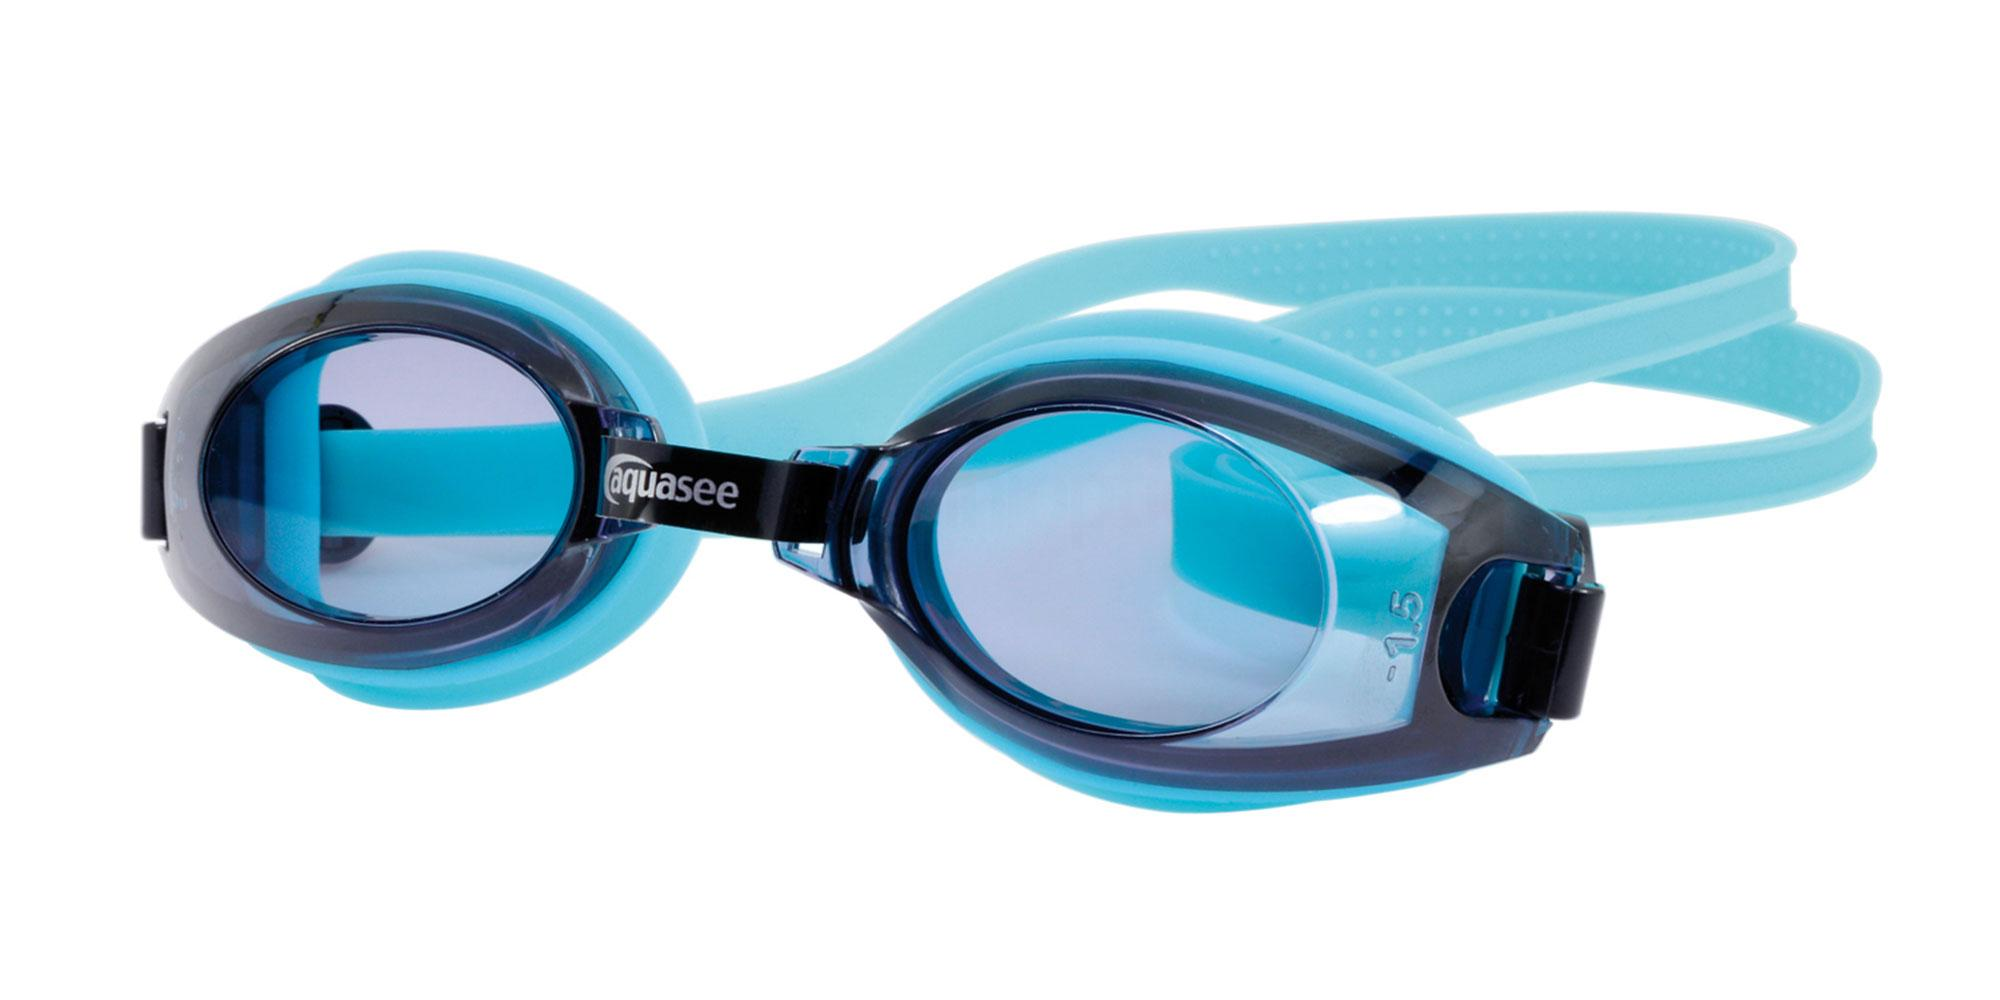 Turquoise/Black Aquasee Small (7+ years) Accessories, Sports Eyewear Kids